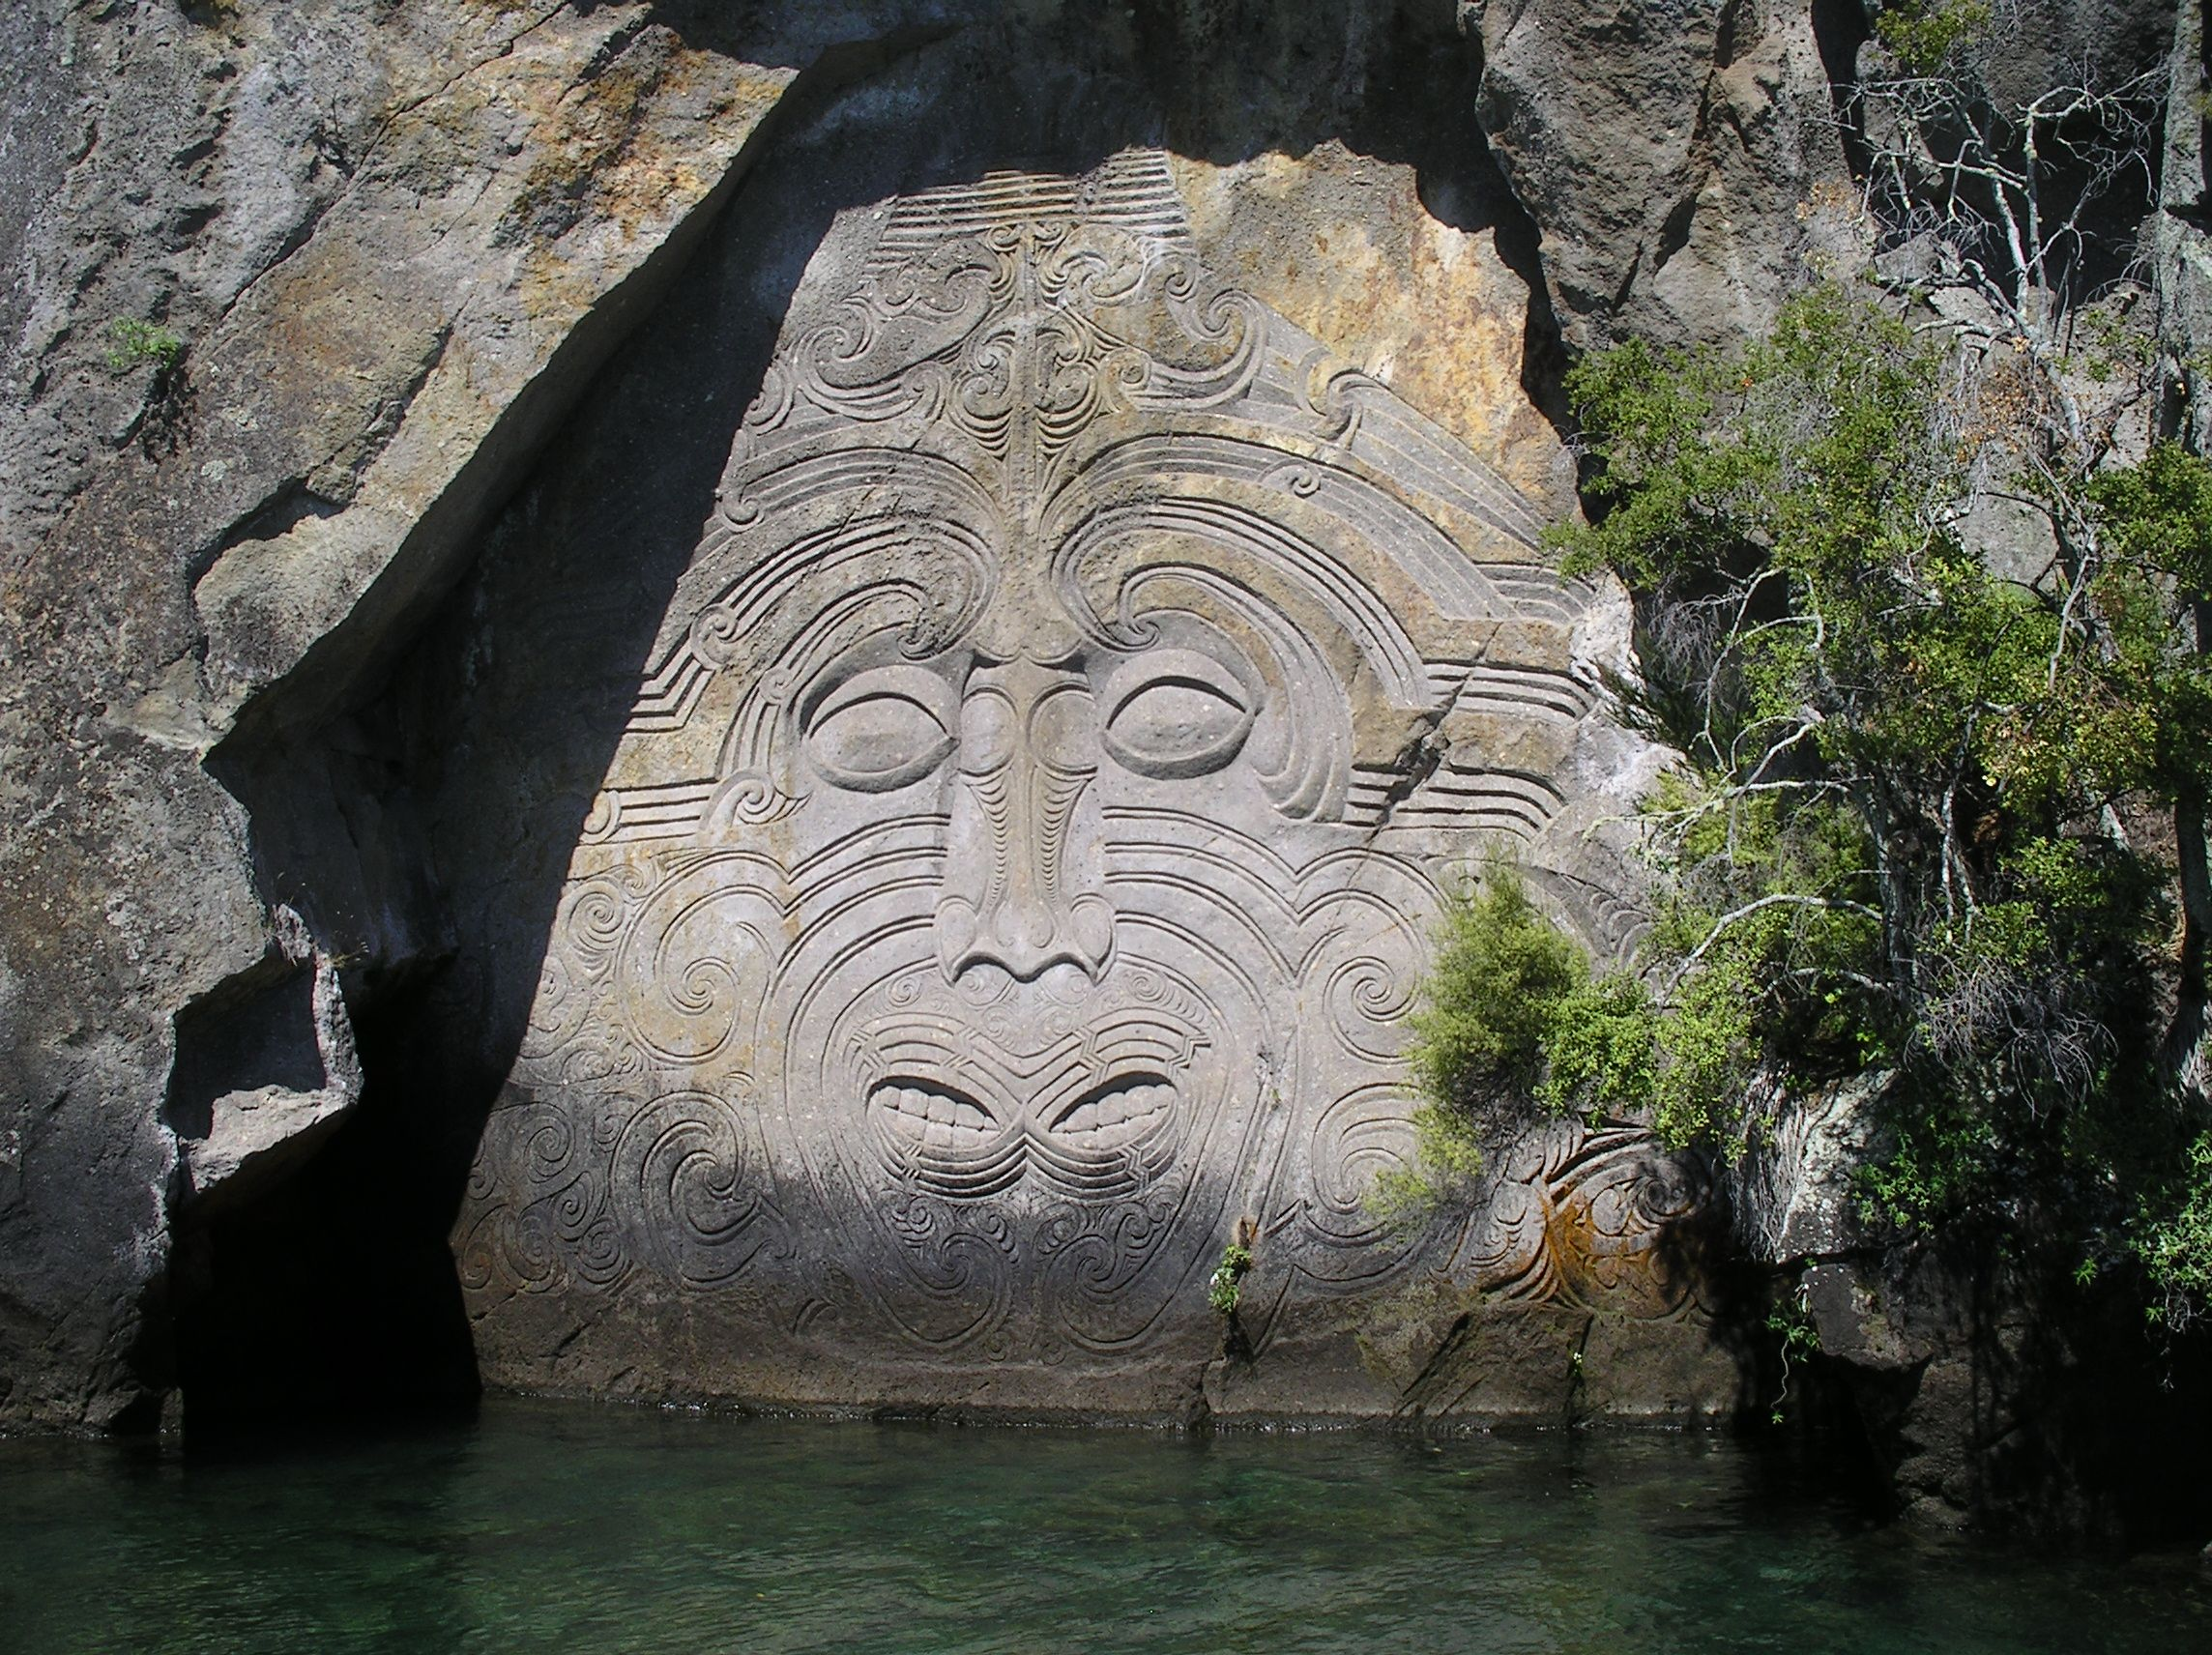 The maori rock carvings at mine bay on lake taupo are